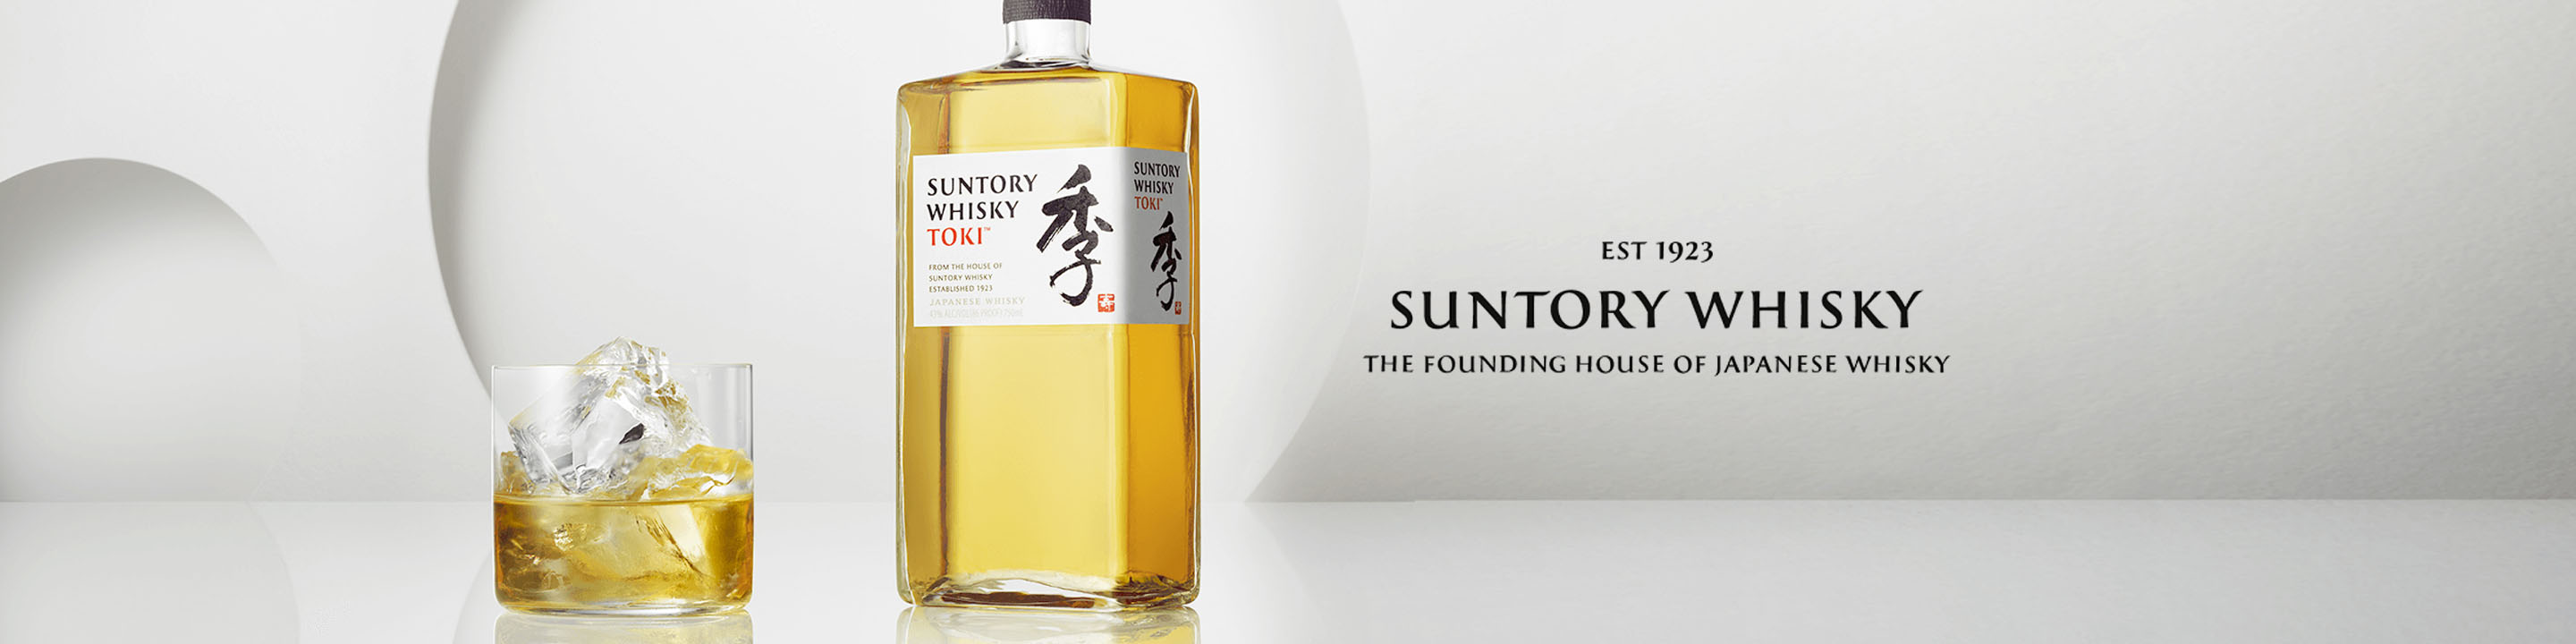 Suntory Whisky Toki™ is a vivid blend of carefully selected whiskies from the House of Suntory's globally acclaimed Hakushu, Yamazaki, and Chita distilleries.  Buy Suntory Whisky Toki online now from nearby liquor stores via Minibar Delivery.